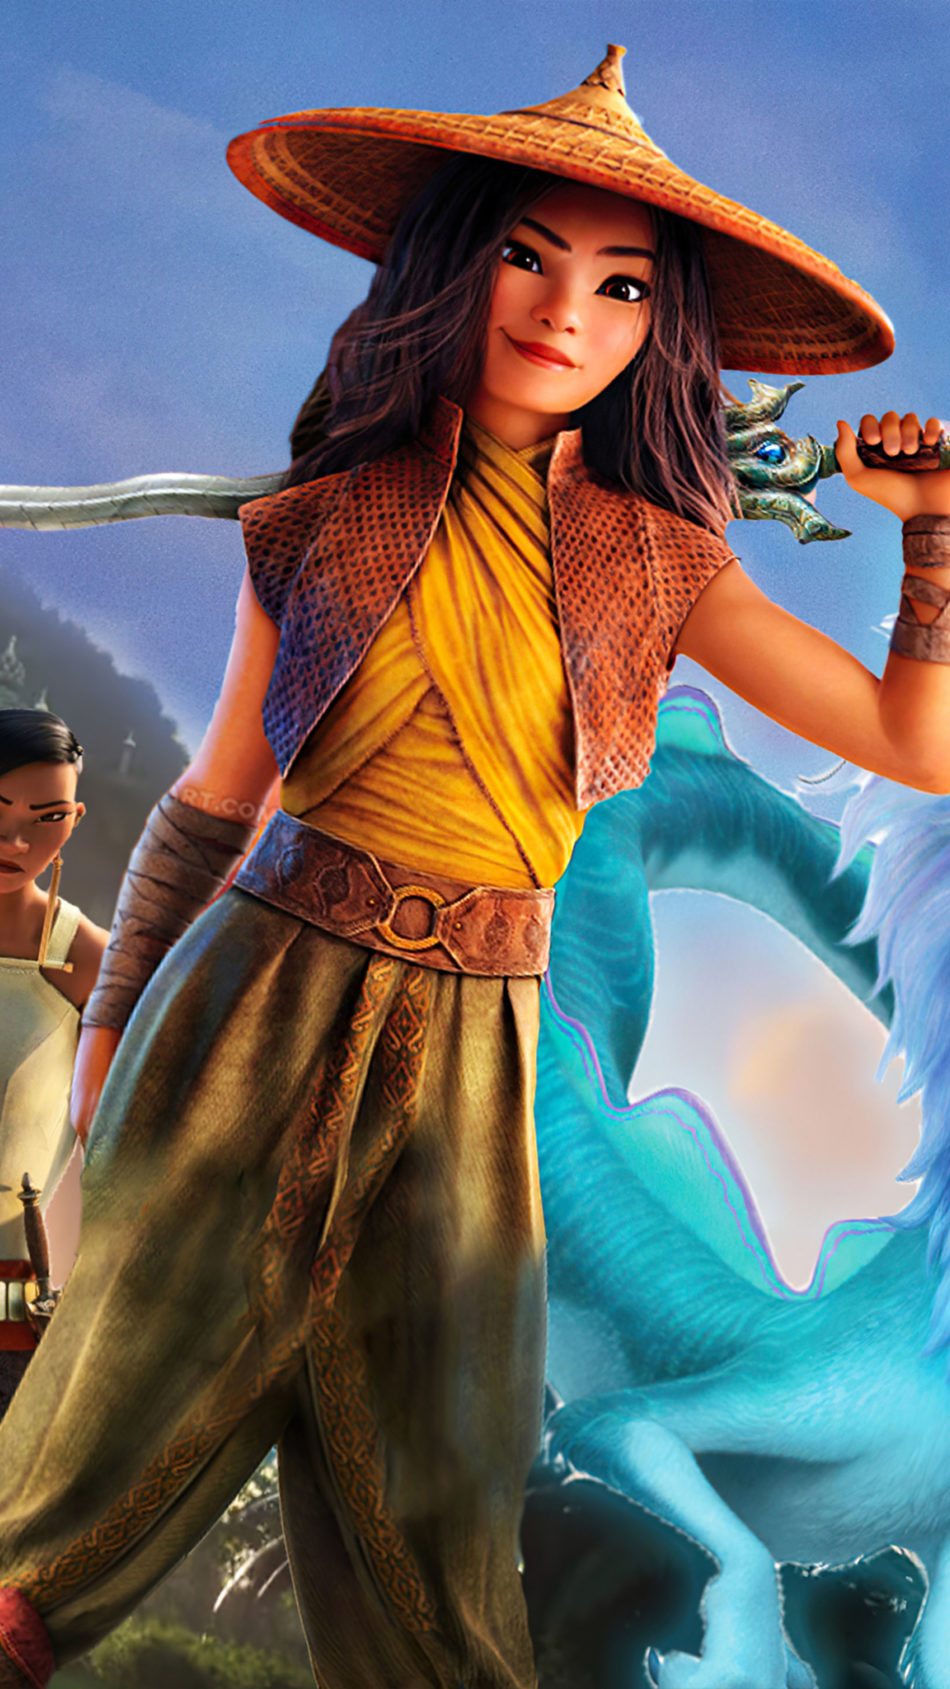 Raya and The Last Dragon Movie Poster 4K Ultra HD Mobile Wallpaper